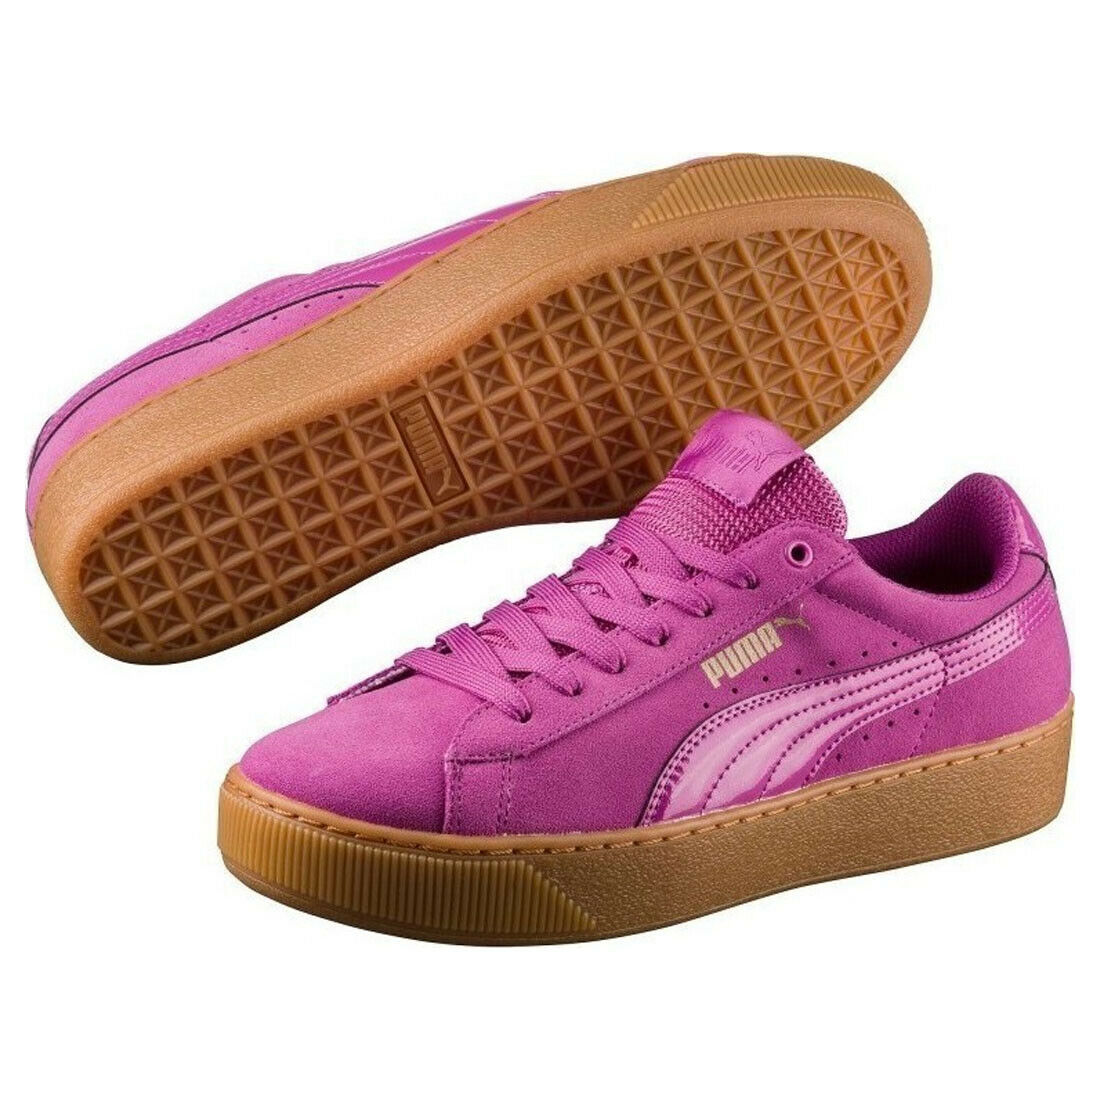 Puma Vikky Platform Trainers pink purple Pink Womens Suede Lace Up shoes